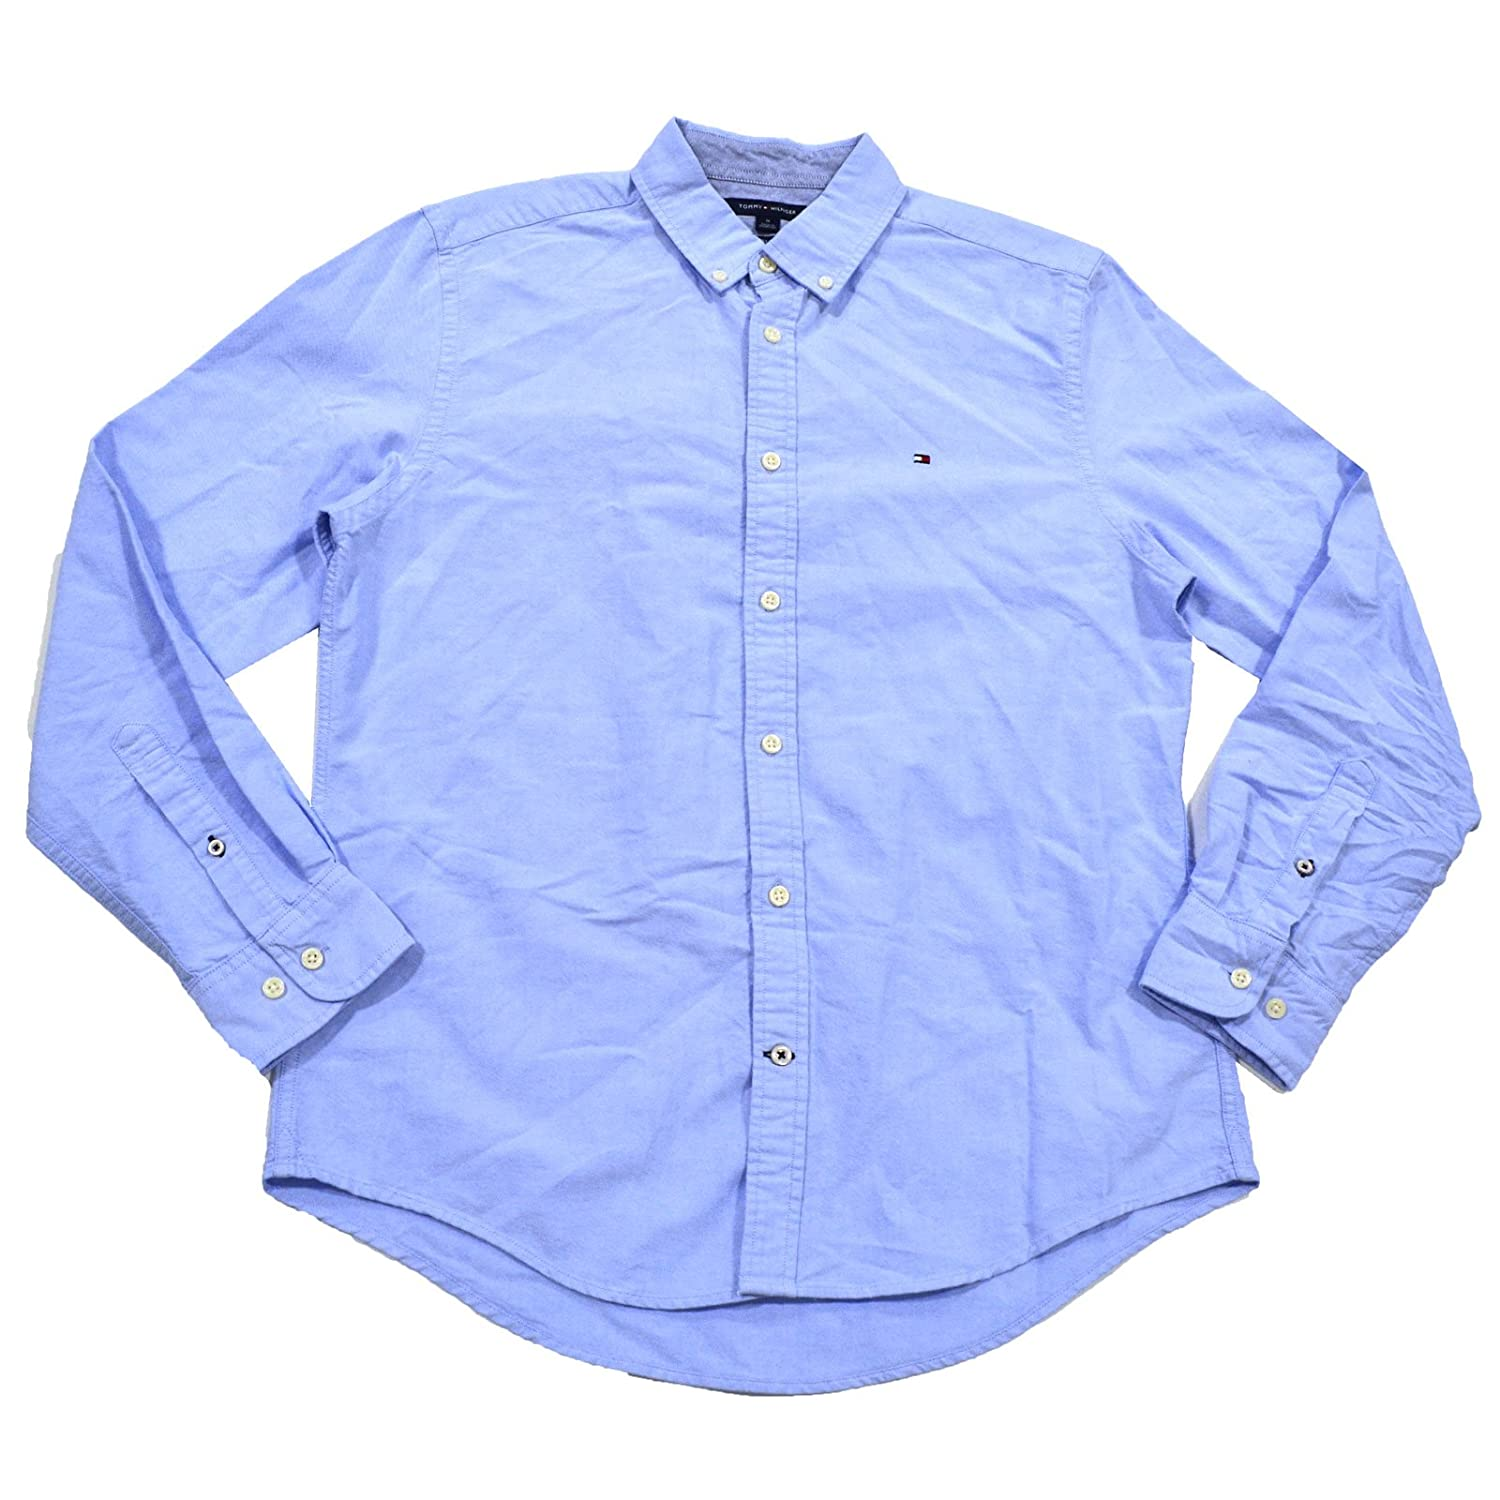 e3af81bd Tommy Hilfiger Mens Custom Fit Oxford Shirt [5KJjO1406230] - $30.99